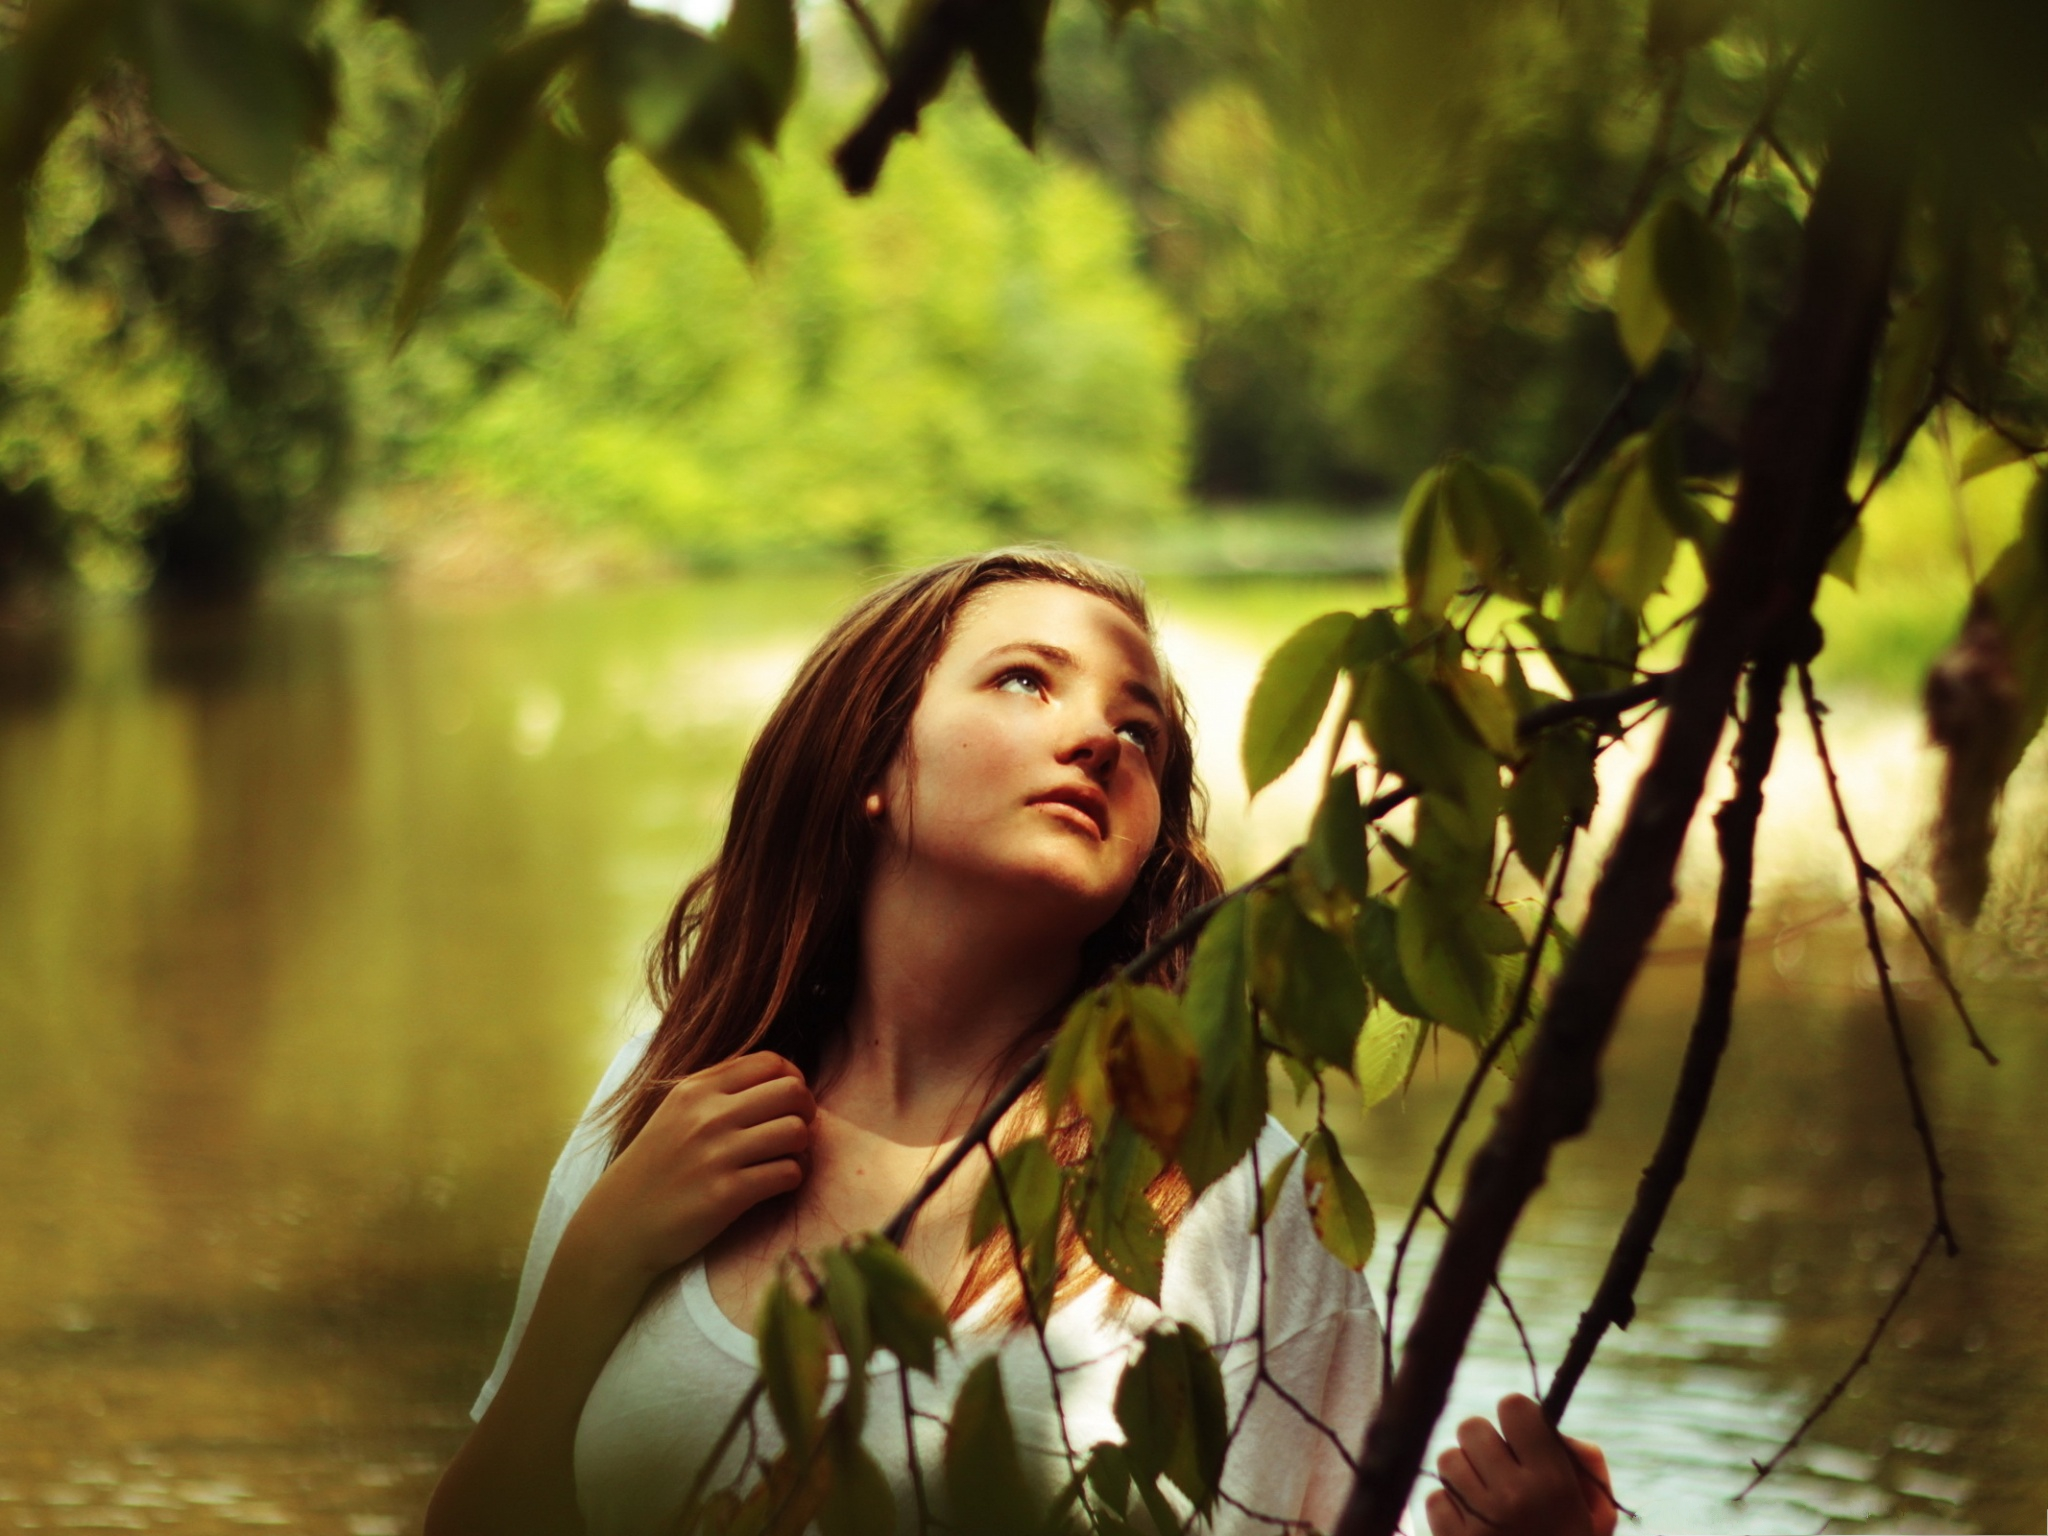 girl in nature young and beautiful girl amazed in nature